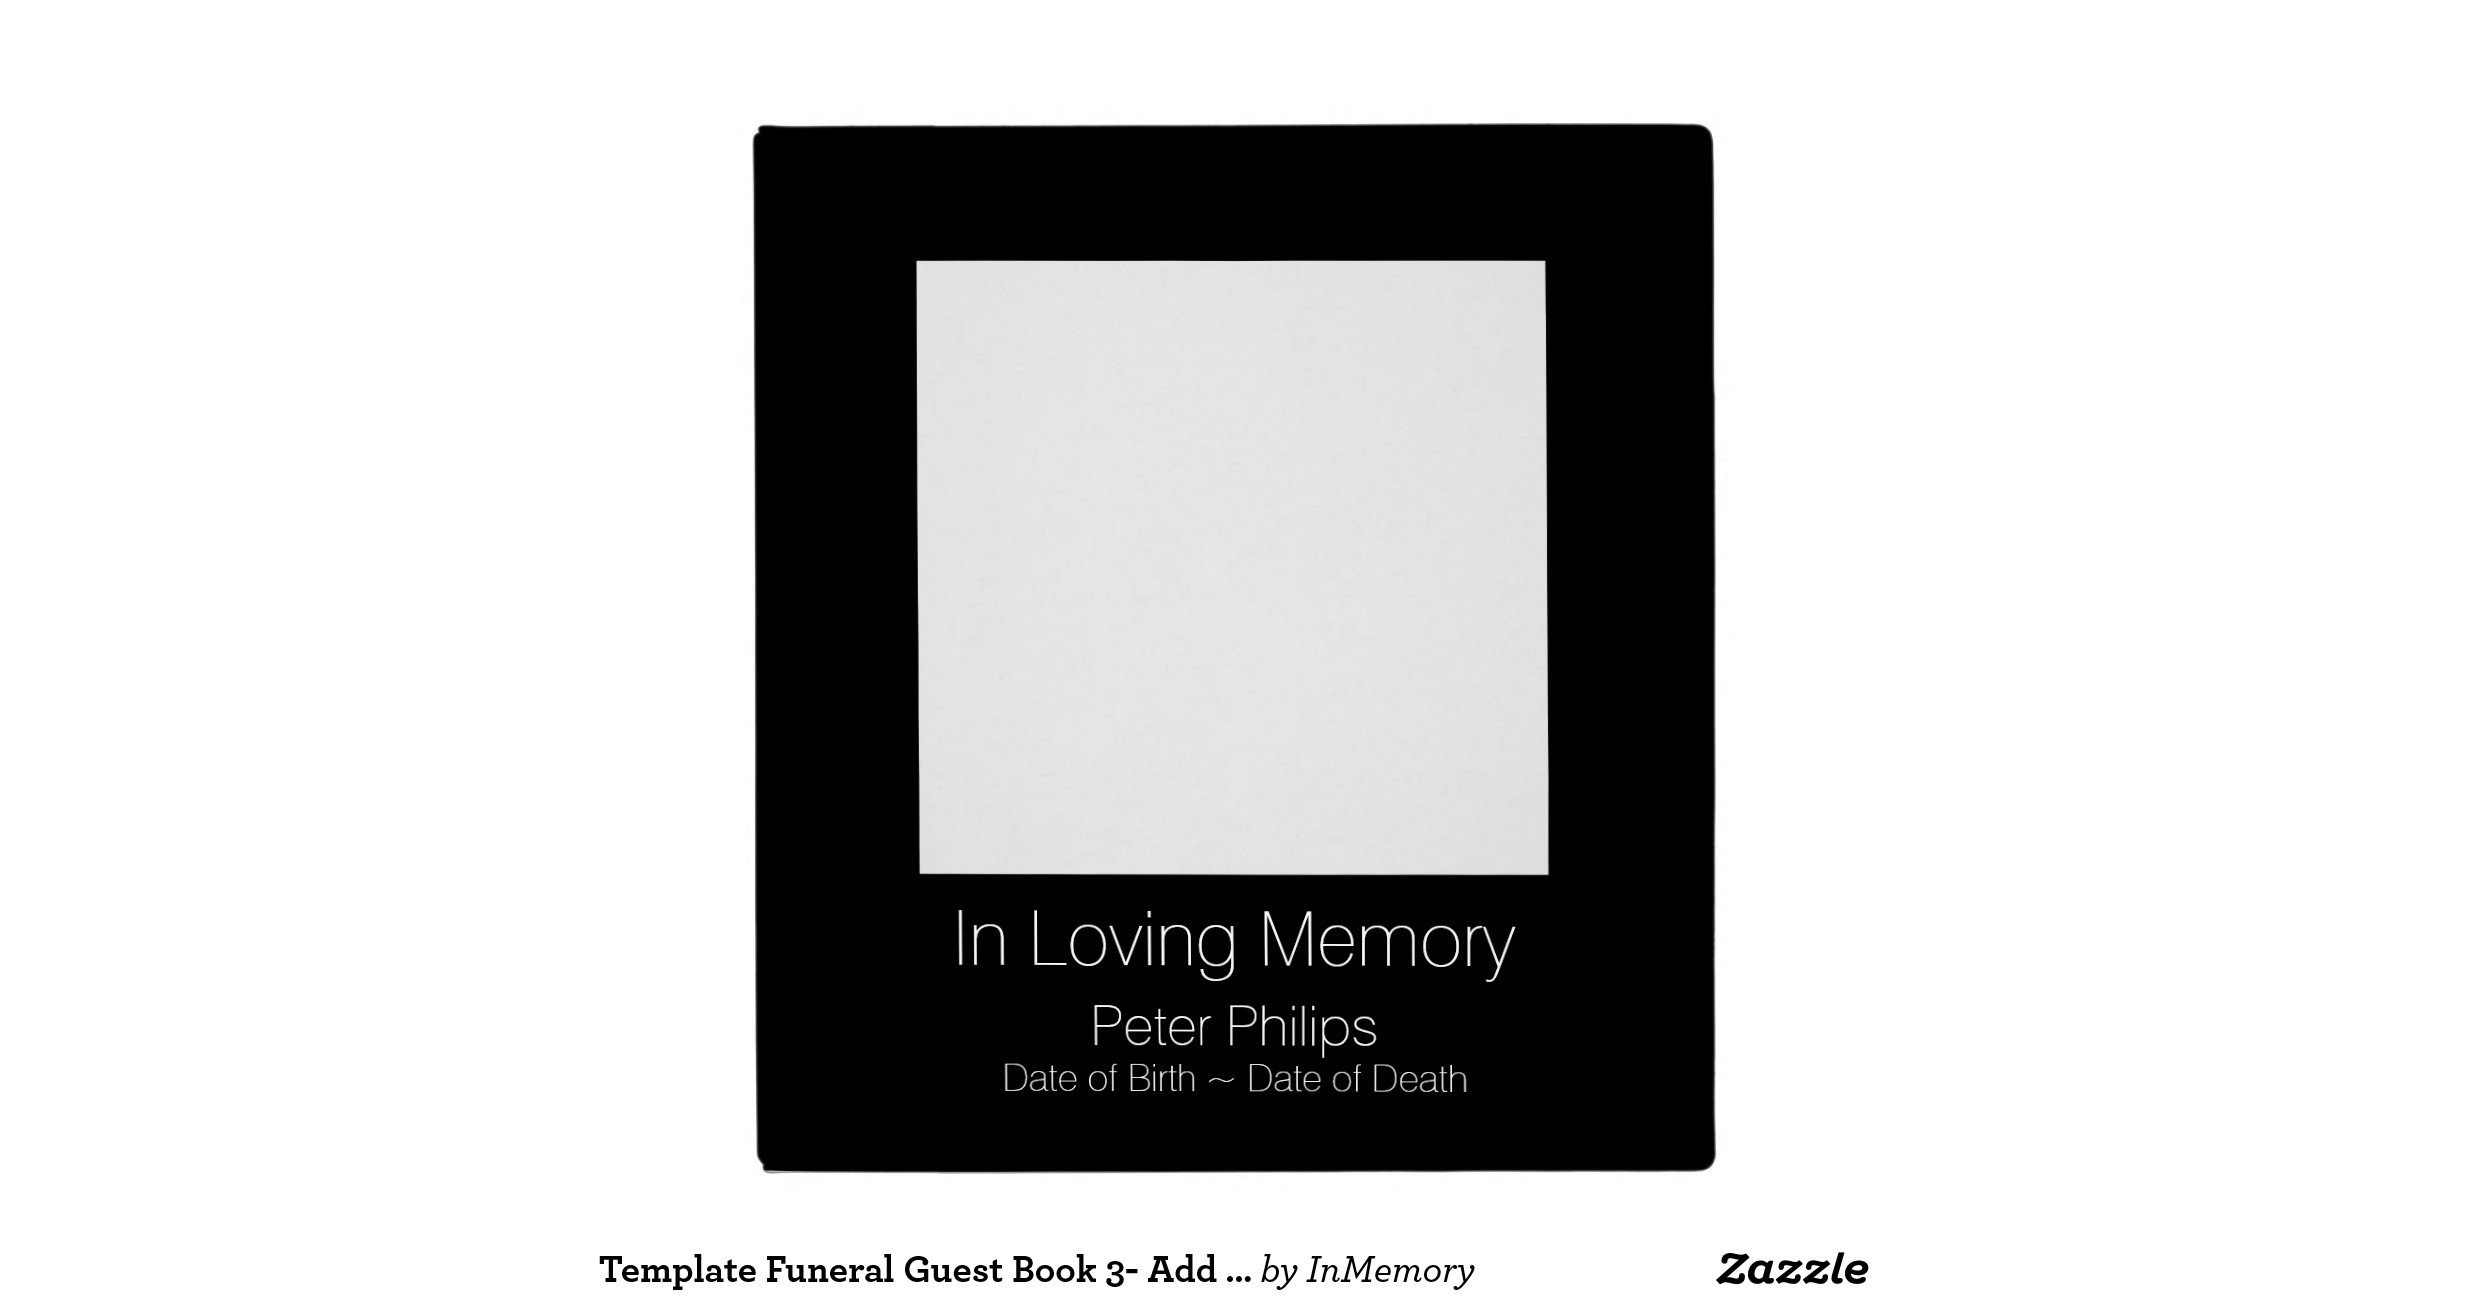 Funeral Guest Book Template Template Funeral Guest Book 3 Add Favorite Image Binder